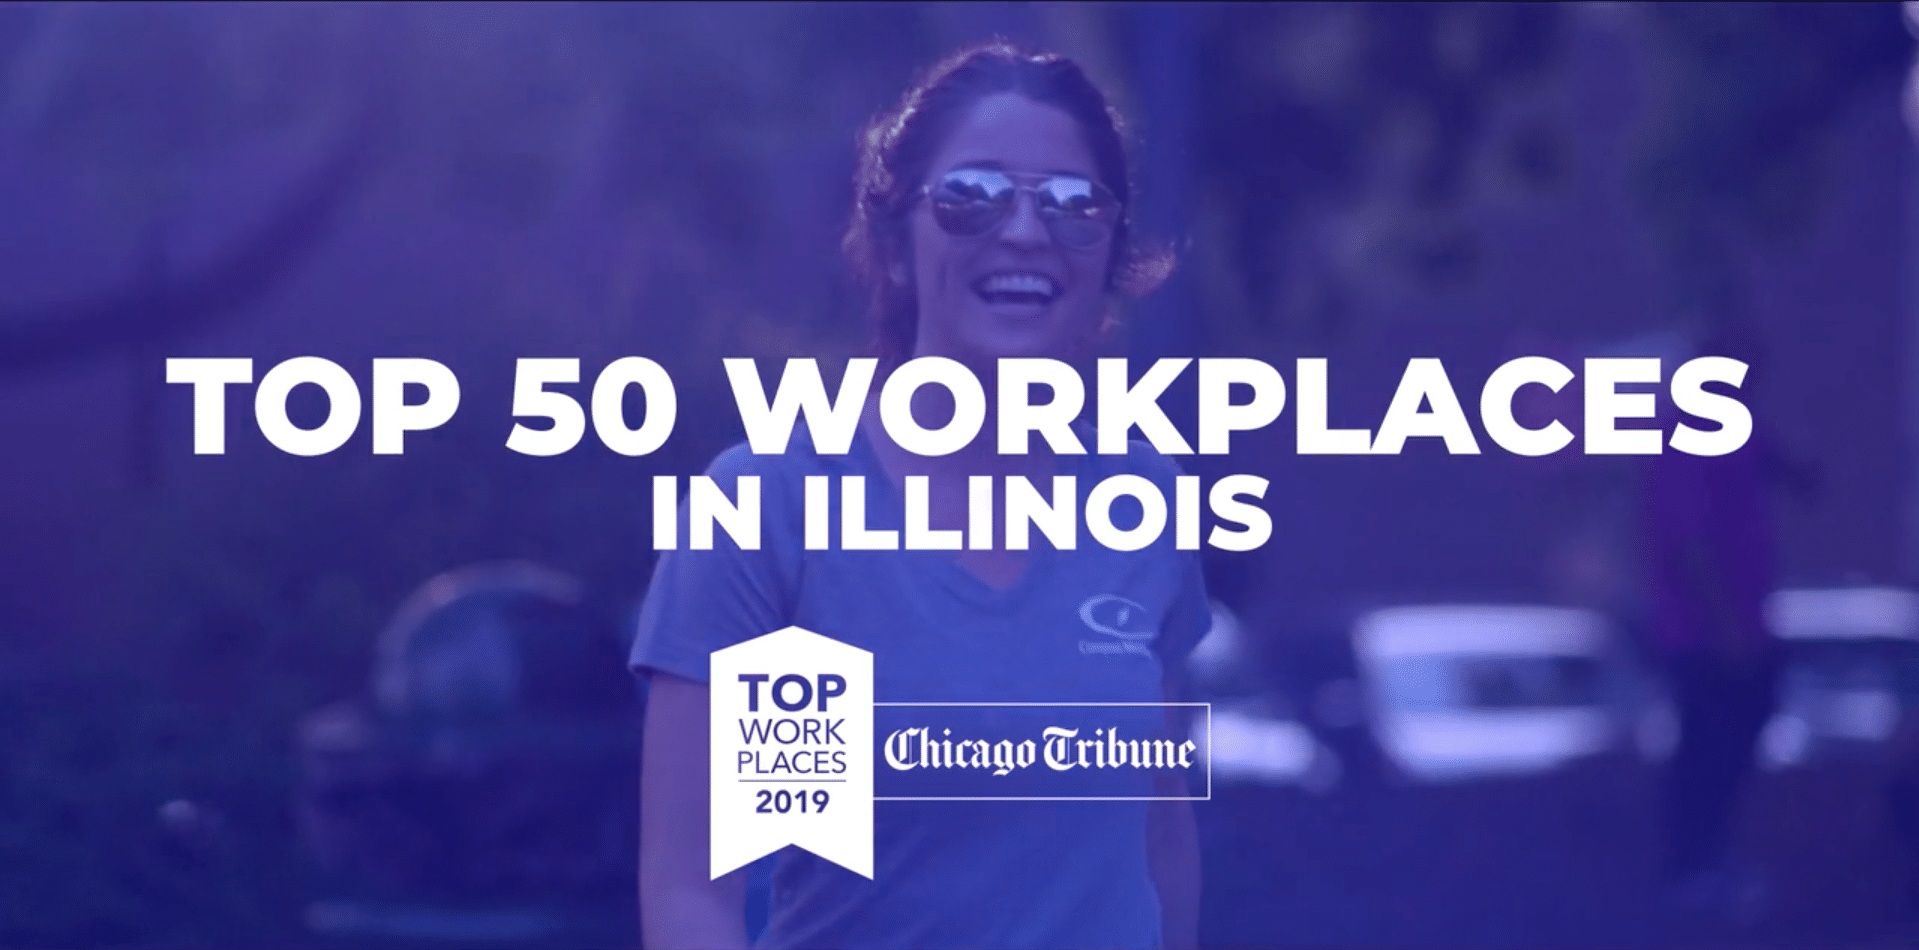 Top 50 Workplaces In Illinois